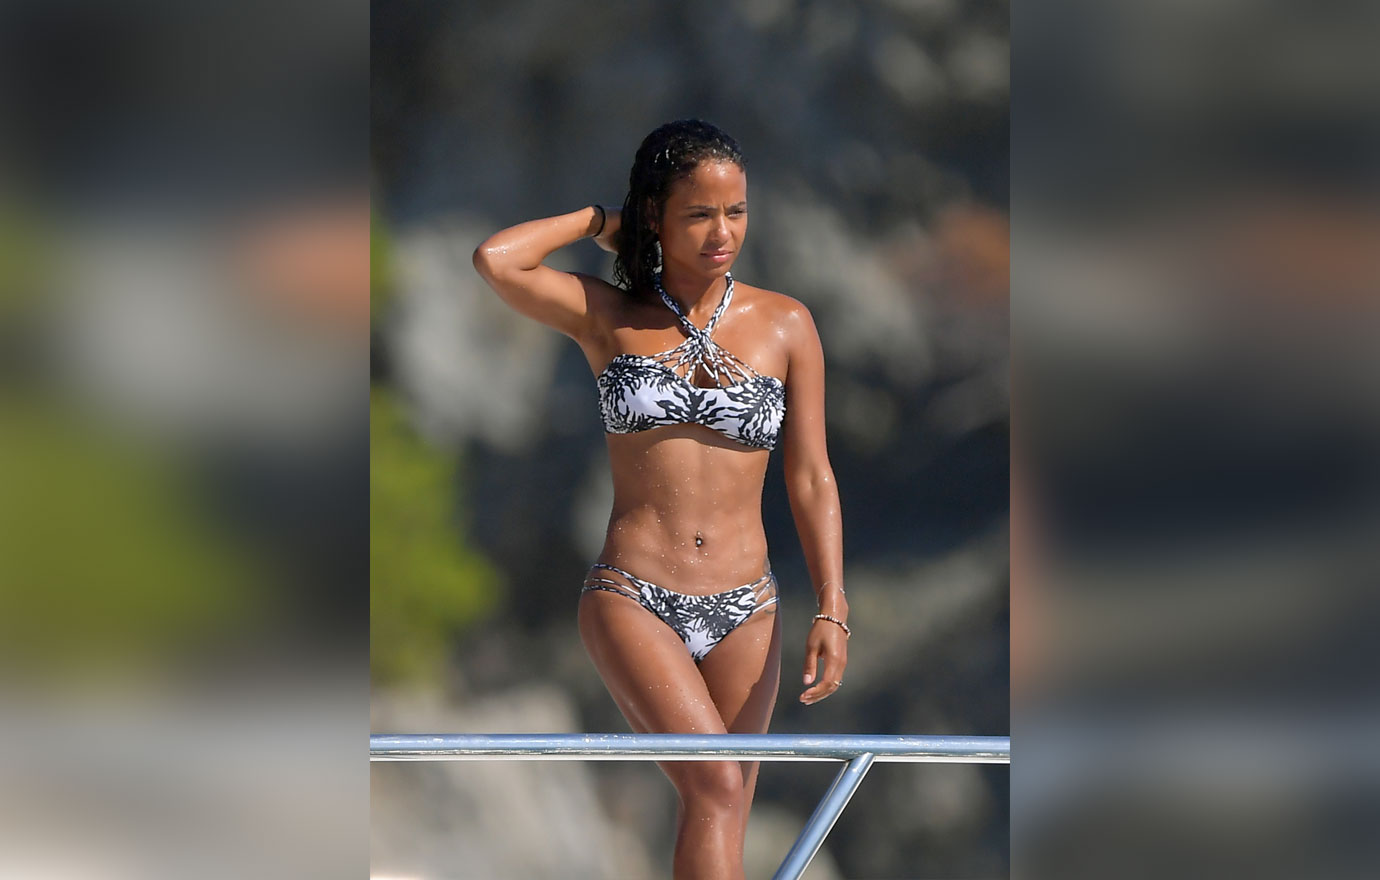 Sexy pictures of christina milian entertaining question